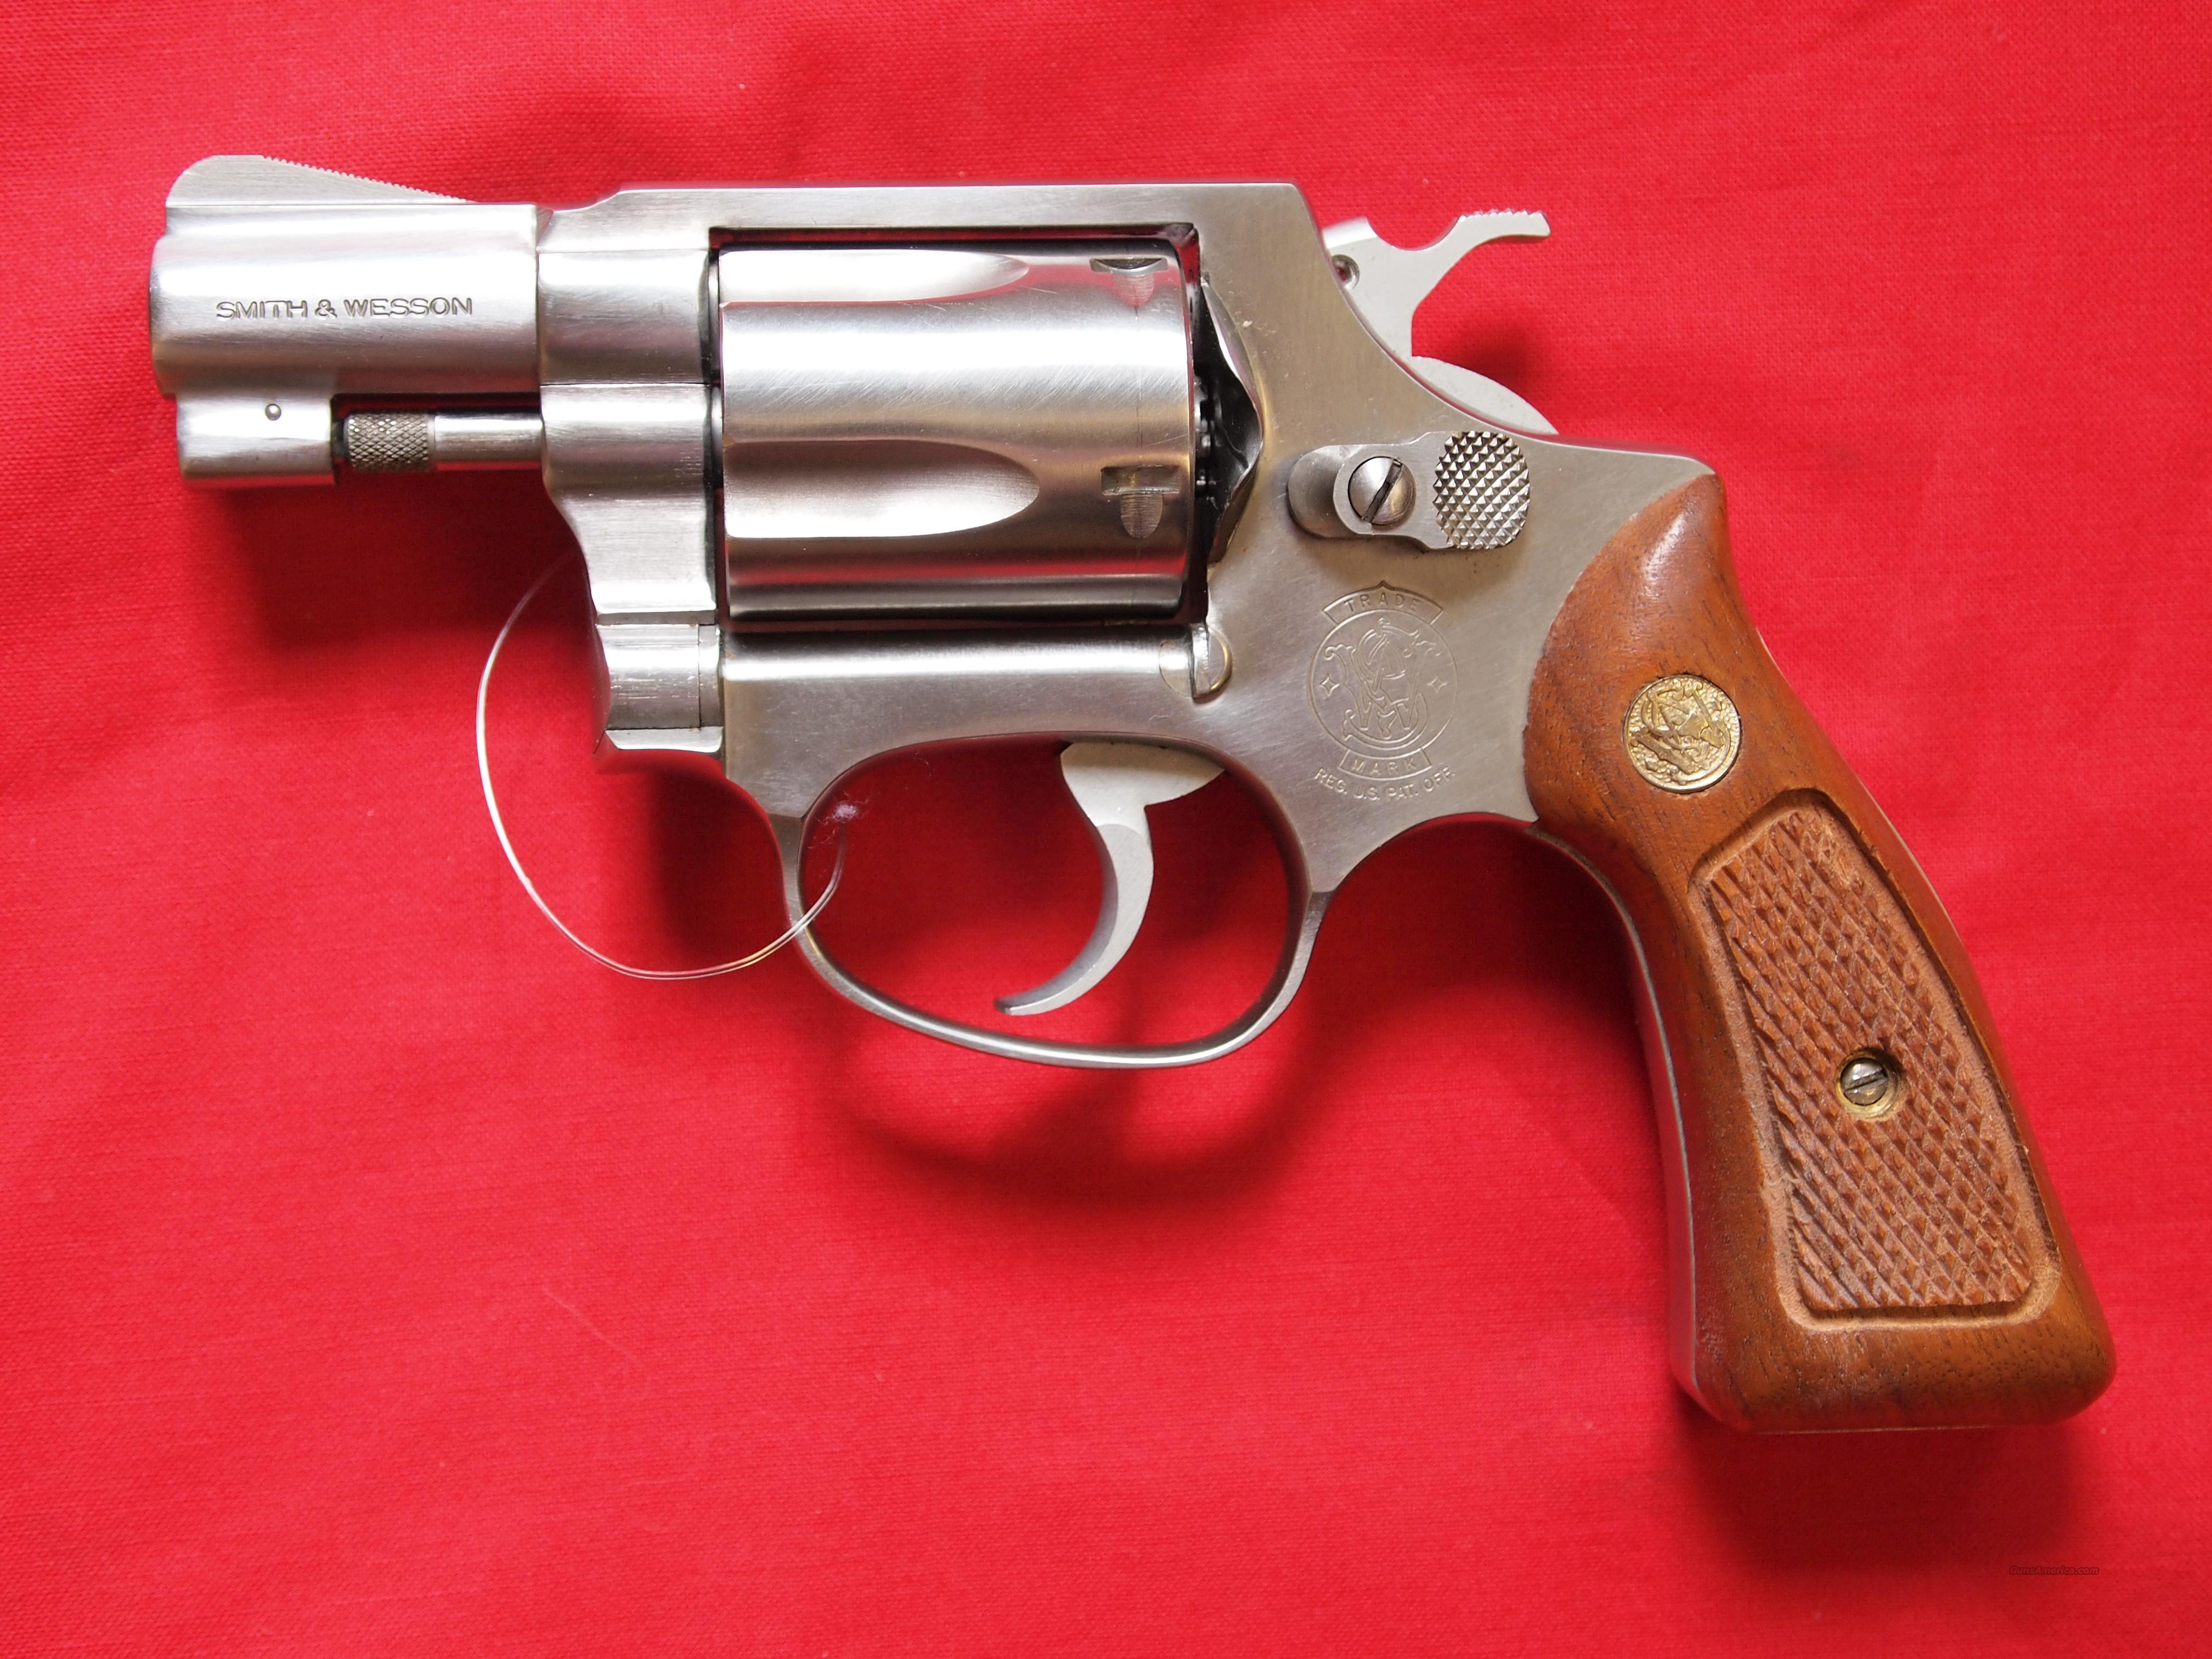 Smith & Wesson Model 60 .38 Special  Guns > Pistols > Smith & Wesson Revolvers > Pocket Pistols